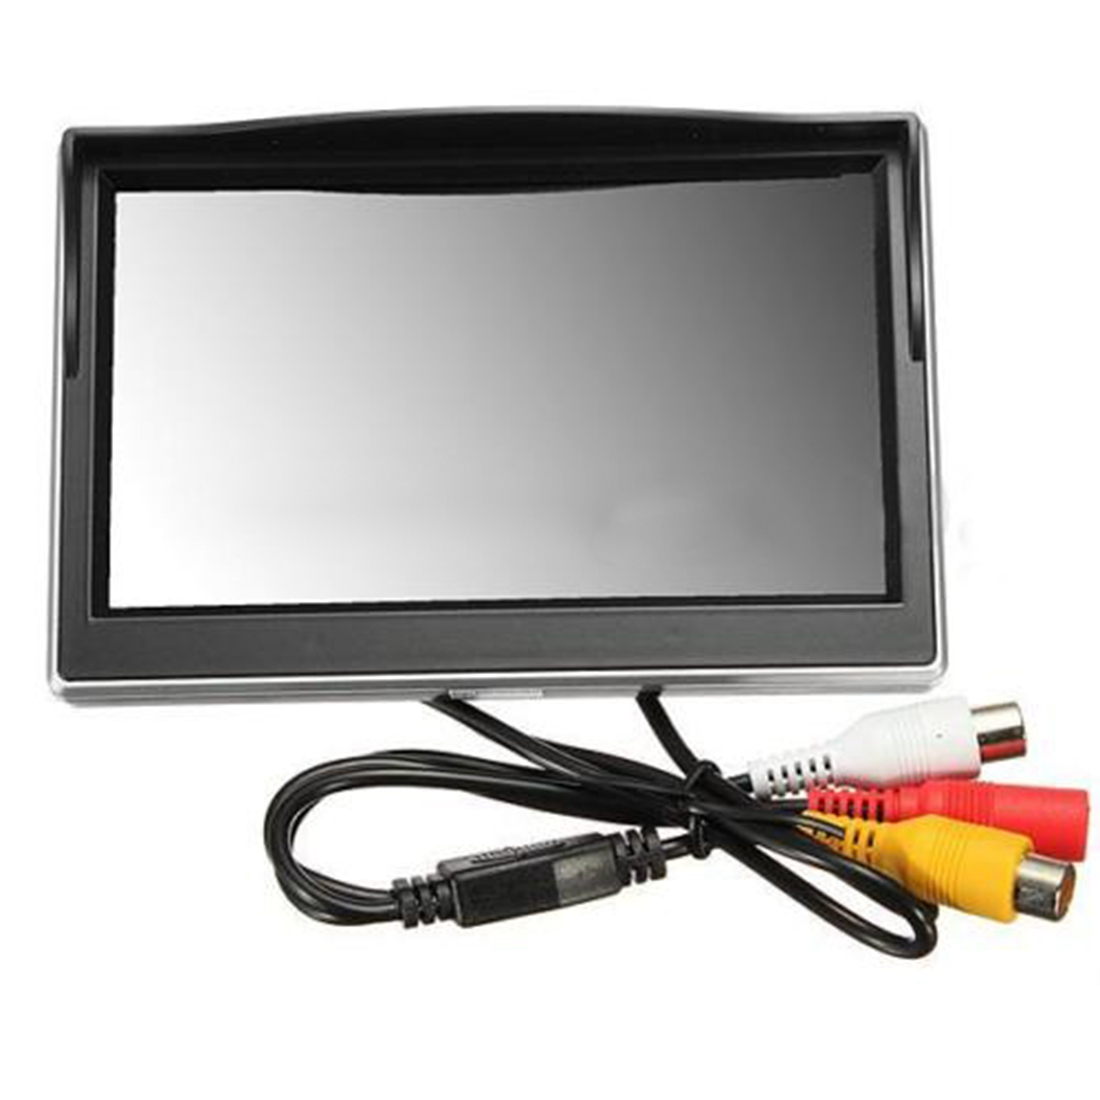 AUTO New 5 800 480 TFT LCD HD Screen Monitor for Car Rear Rearview Backup Camera